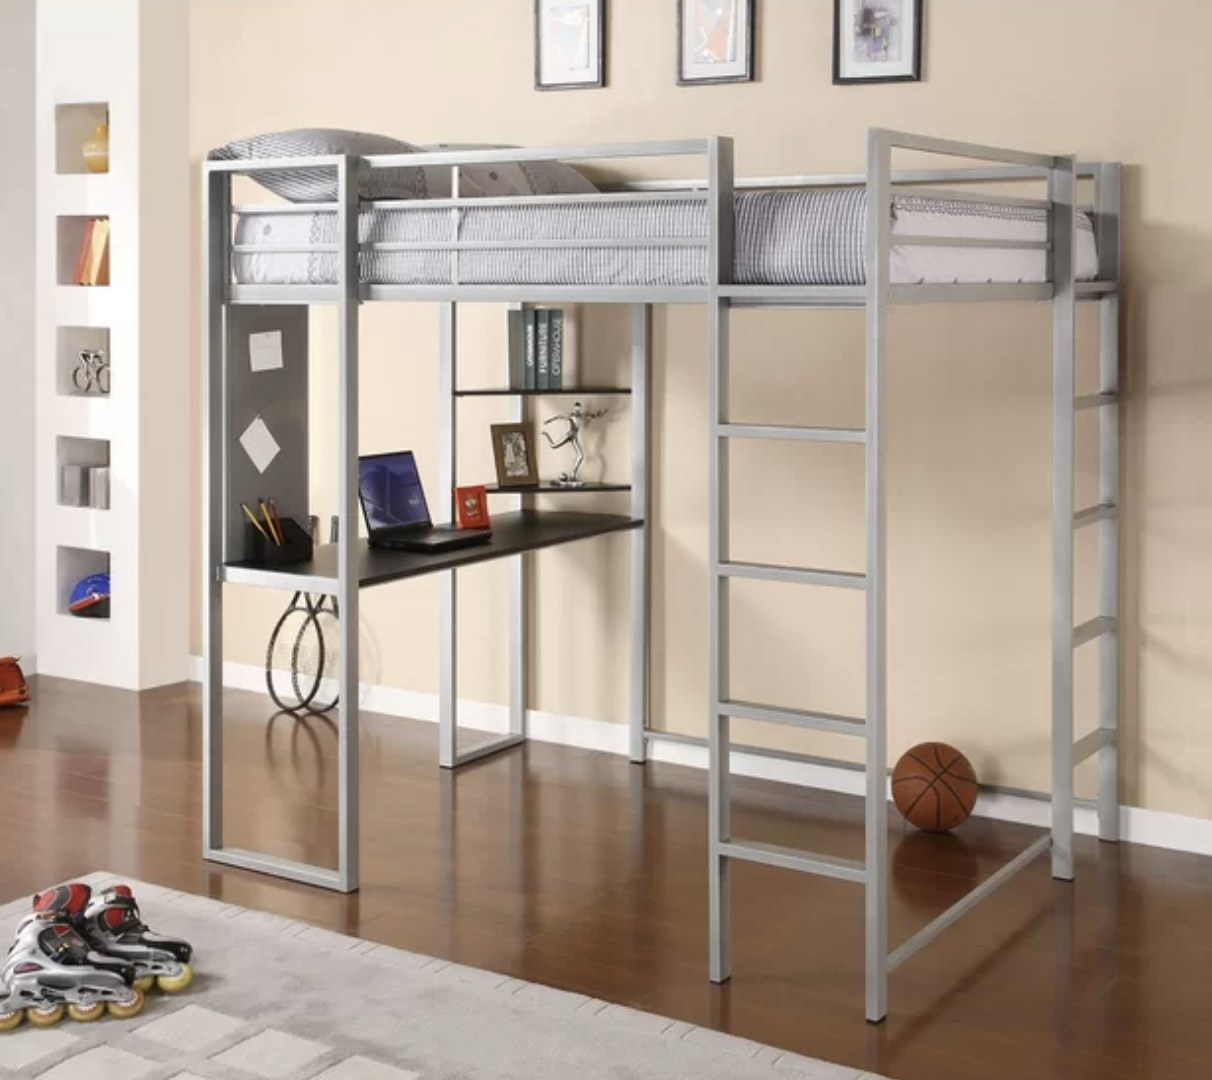 A metal loft bed with bookcase